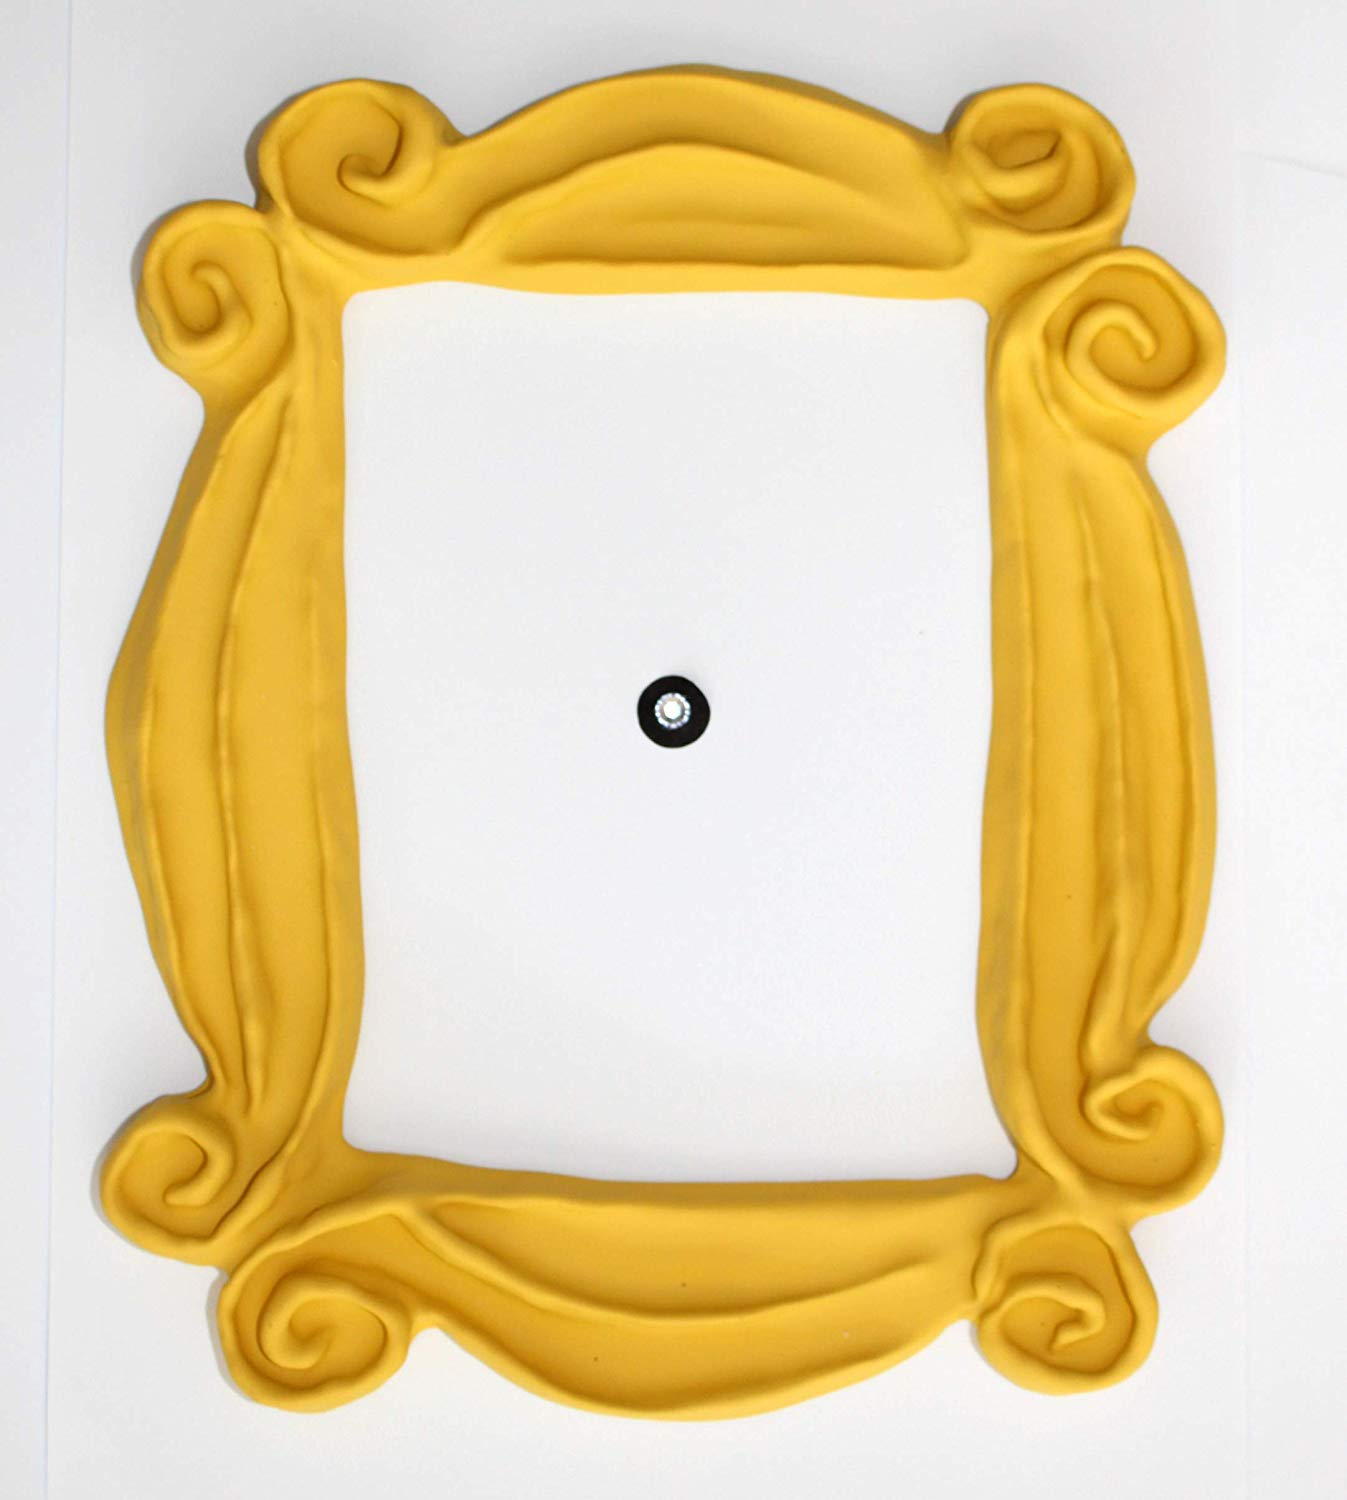 Friends peephole frame clipart clip art download Handmade with Love by Fatima Peephole Yellow Frame. Replica of The Frame  seen in Monica\'s Door. It has Two Side Tape. Ready to Hang. clip art download